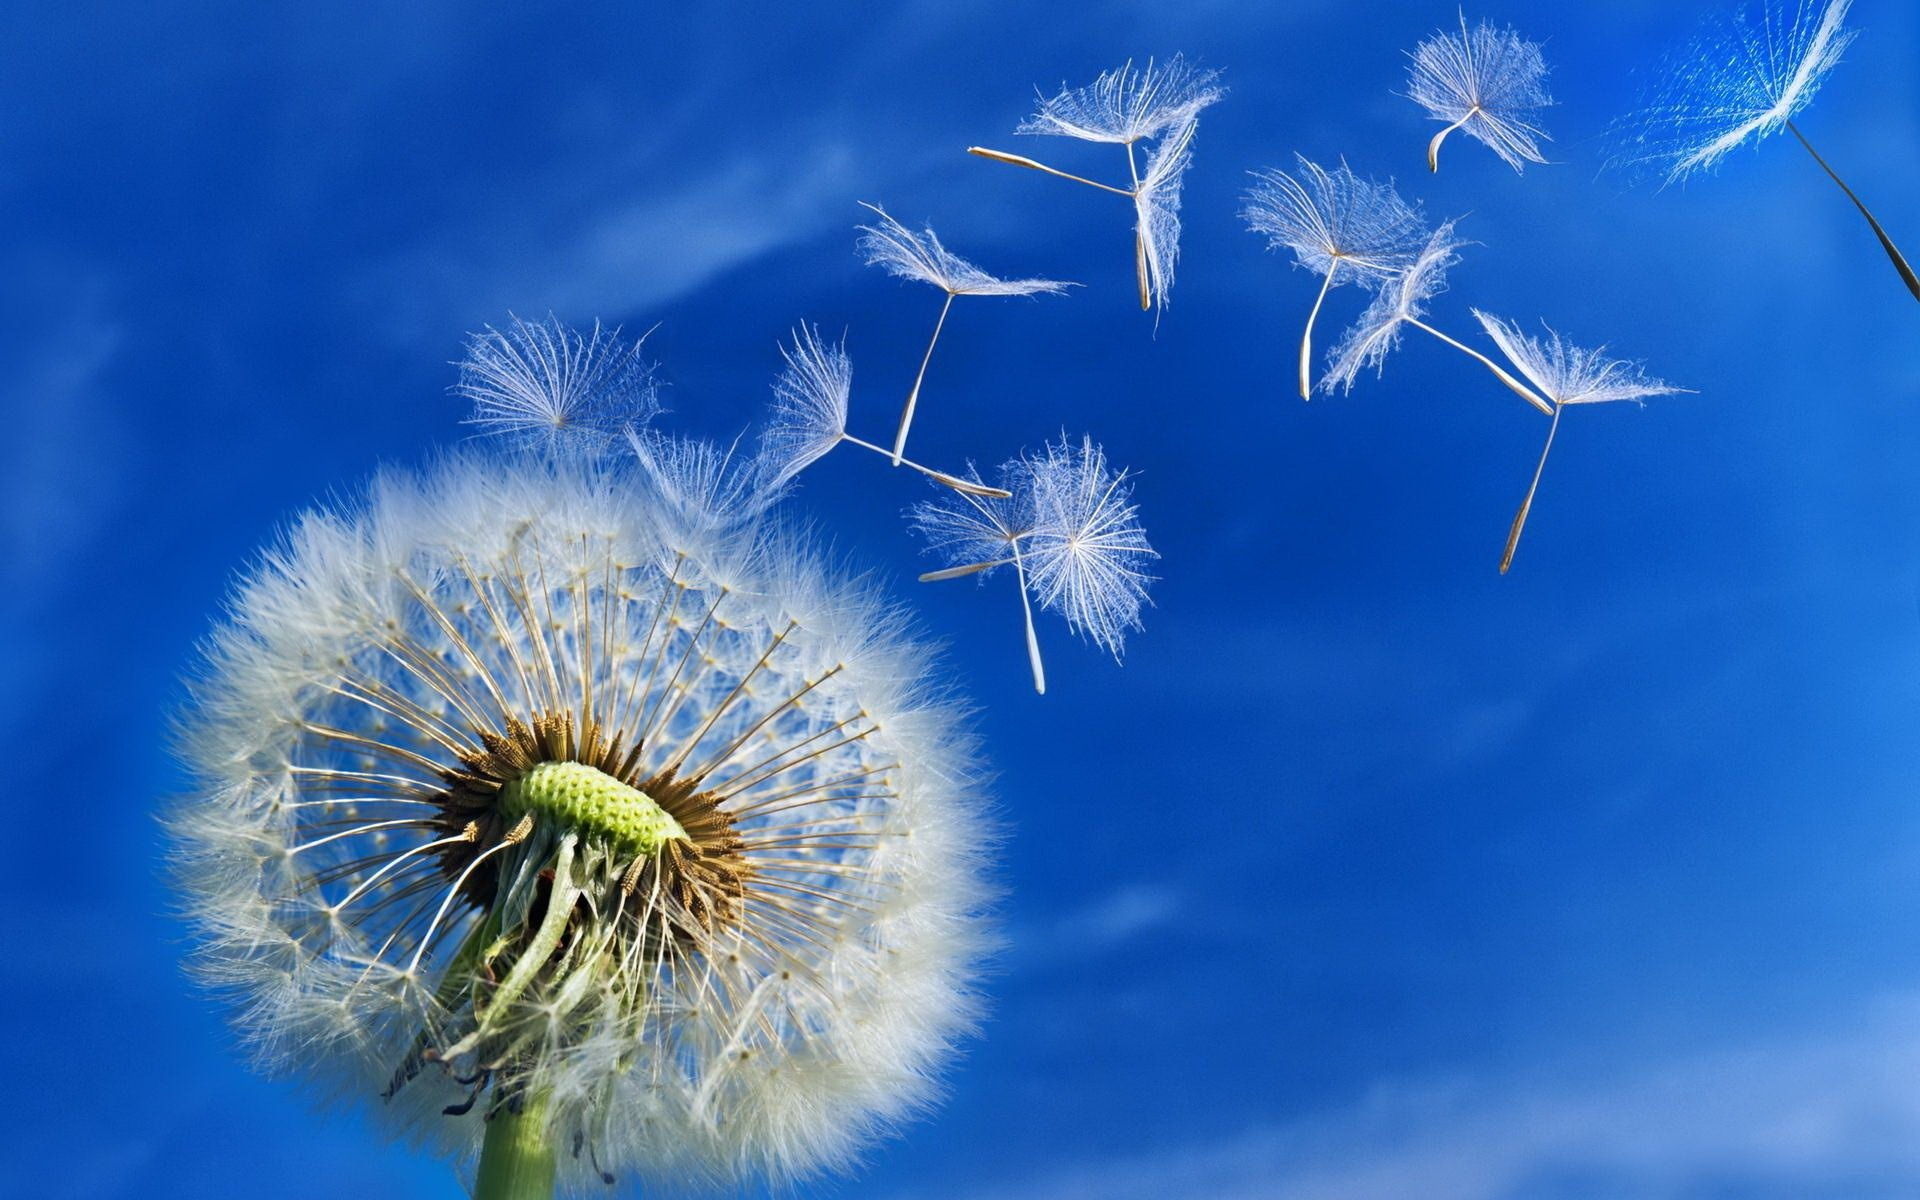 Gallery For gt Dandelion Blowing Background 1920x1200